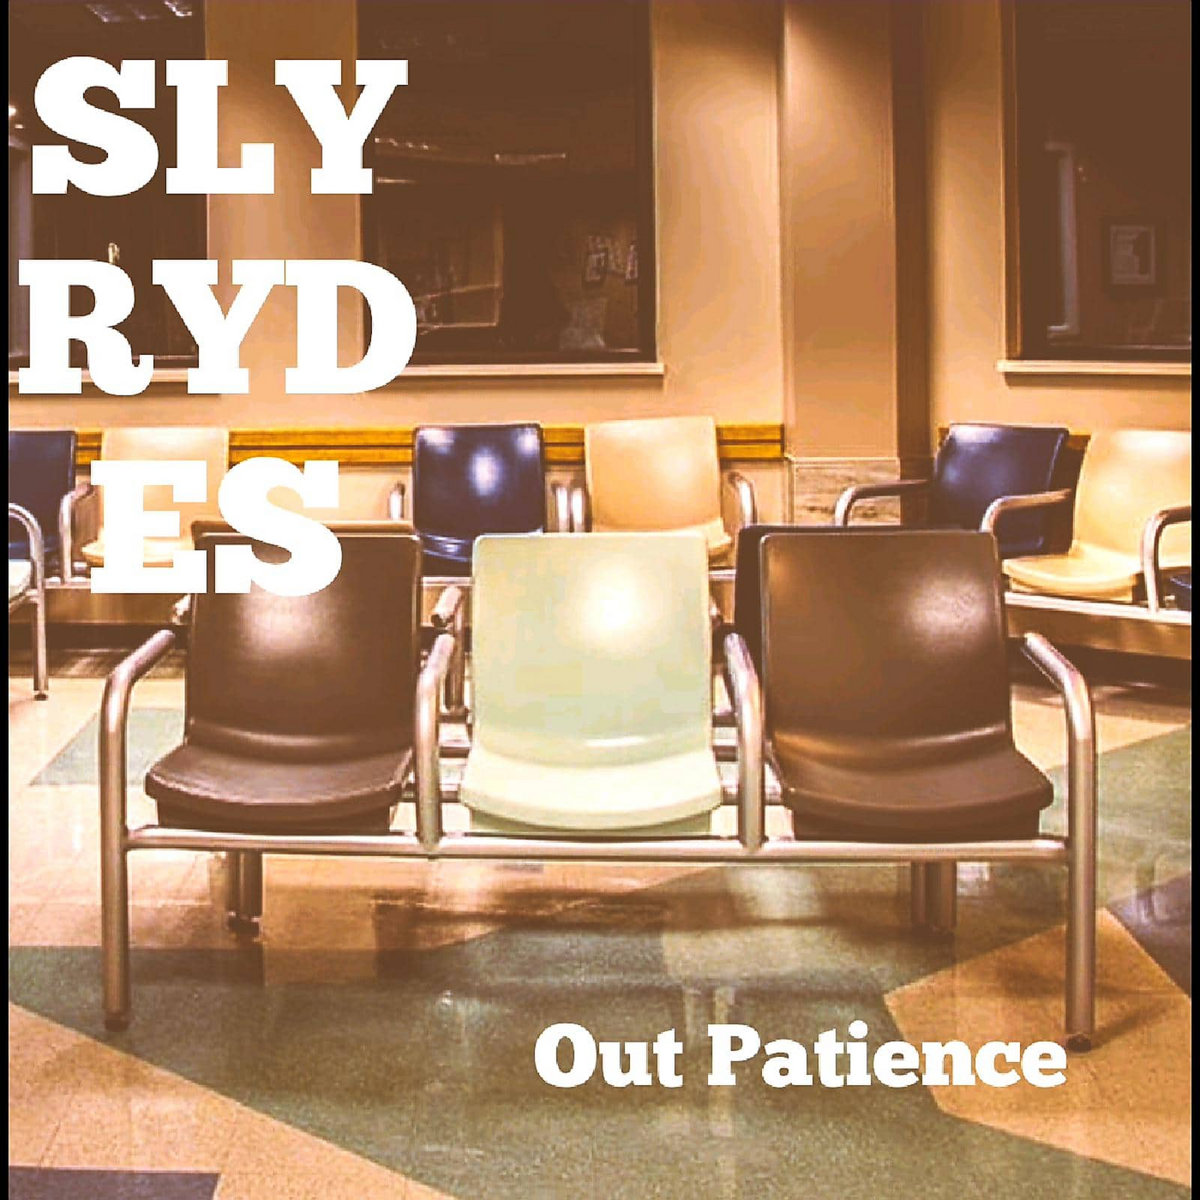 Out Patience by Slyrydes